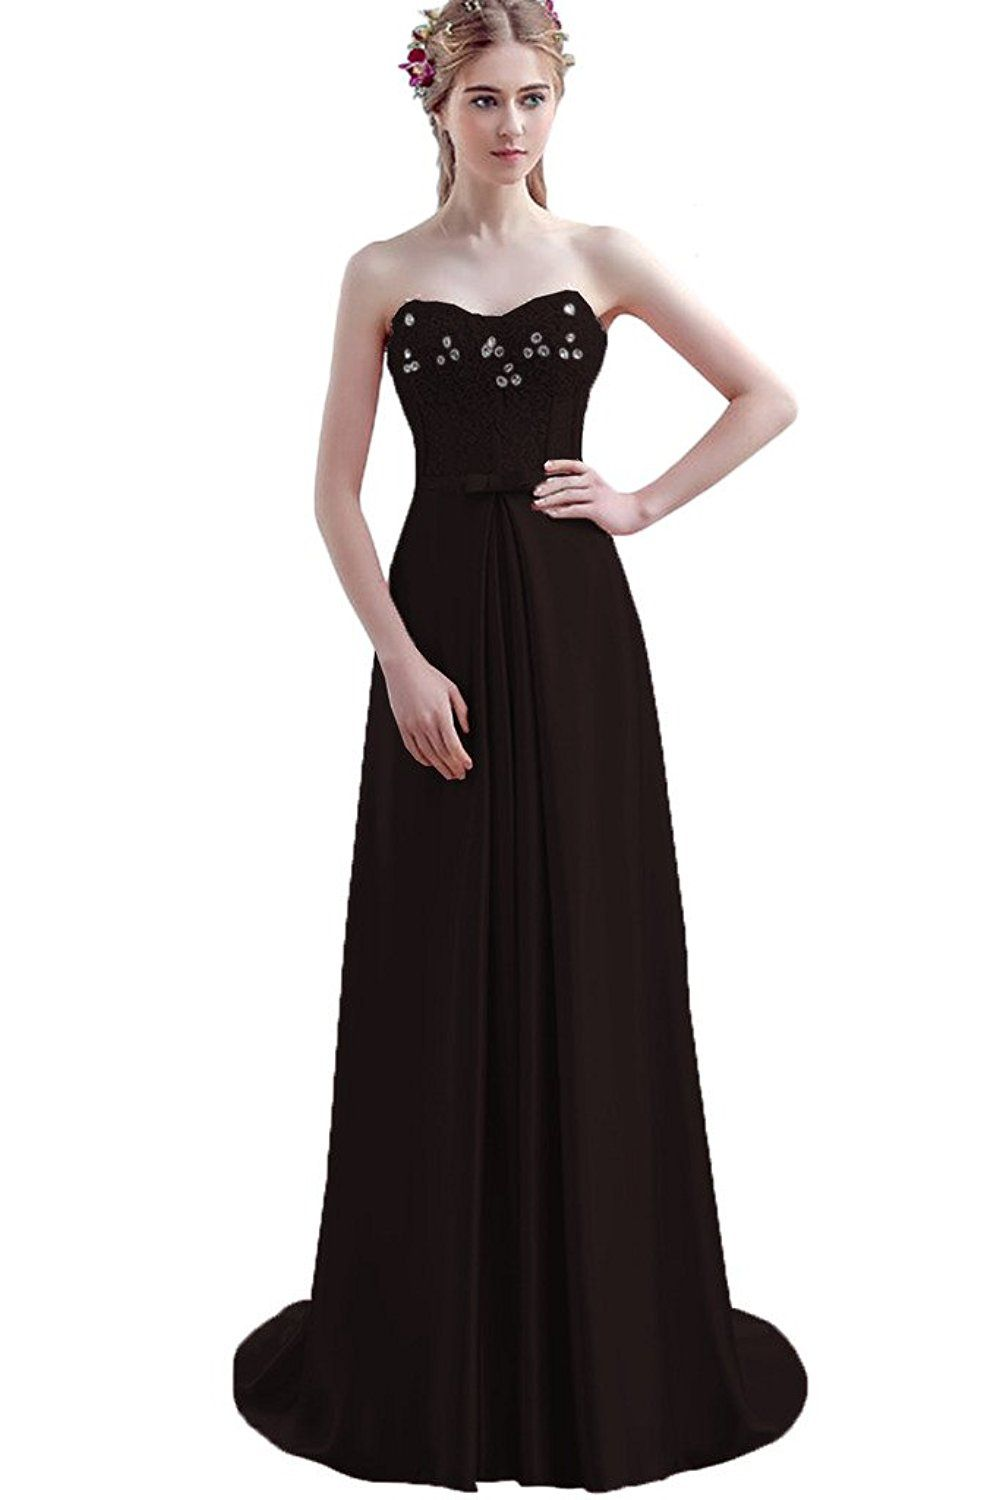 Besswedding wedding long black maxi lace party evening dresses for